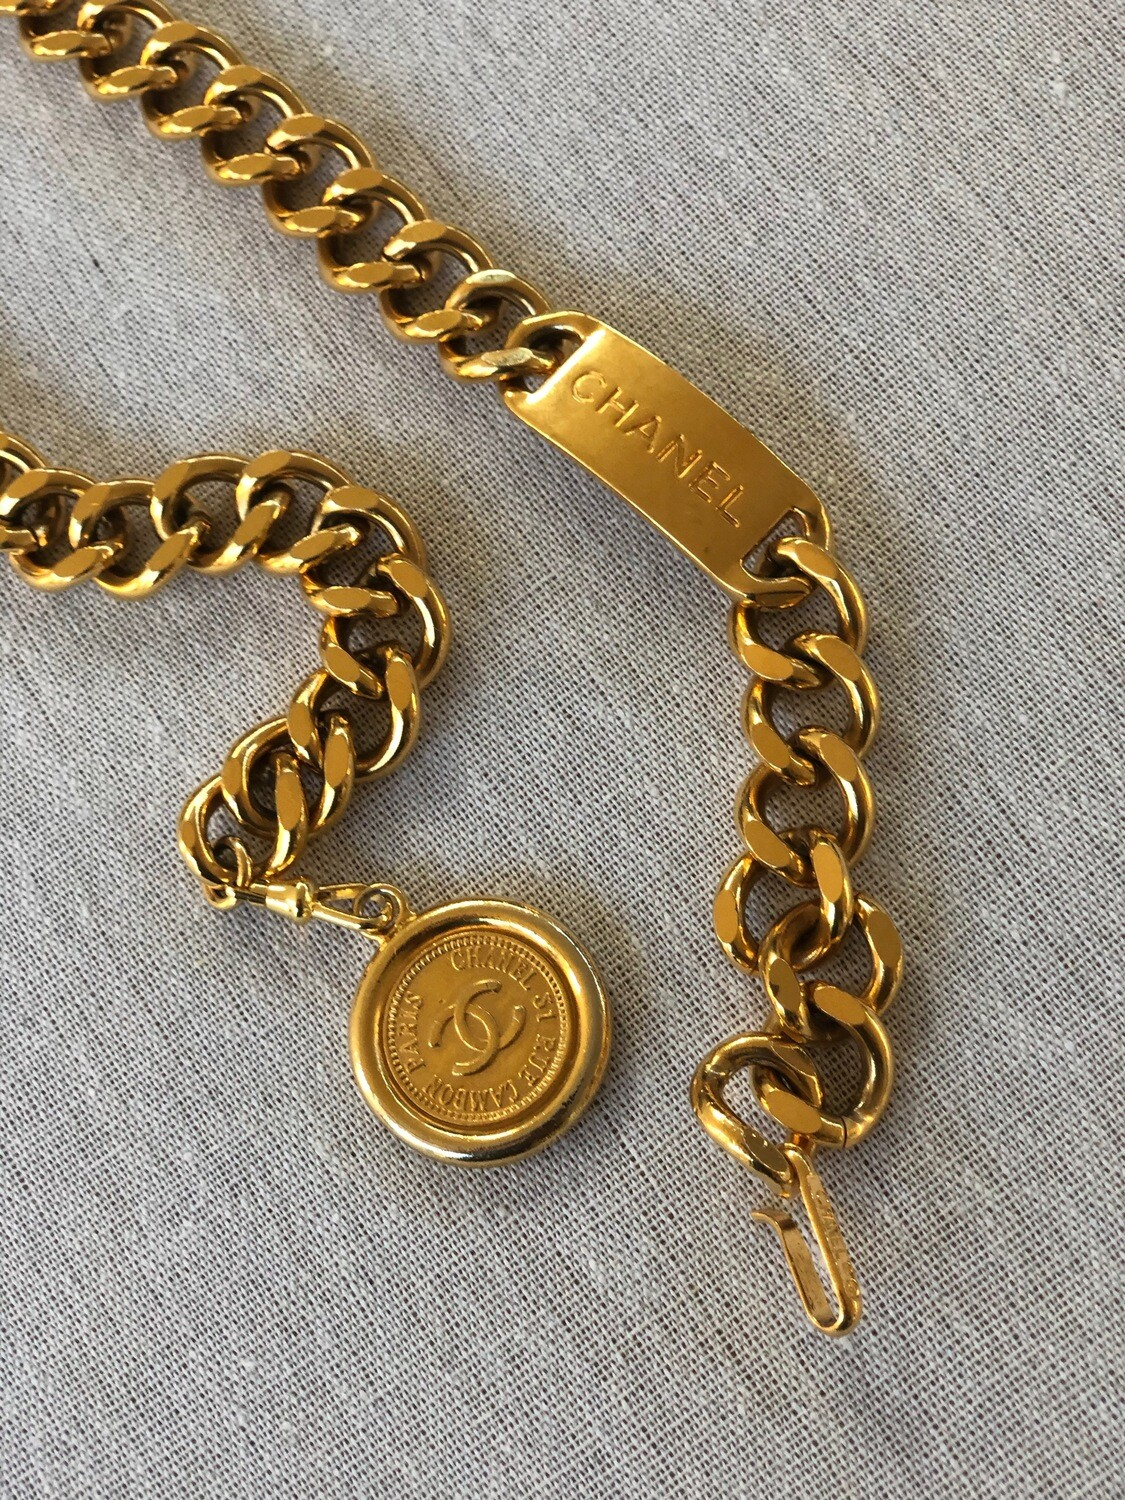 CHANEL THICK CHAIN LOGO PLATE GOLD BELT NECKLACE WITH CHARM MEDALLION